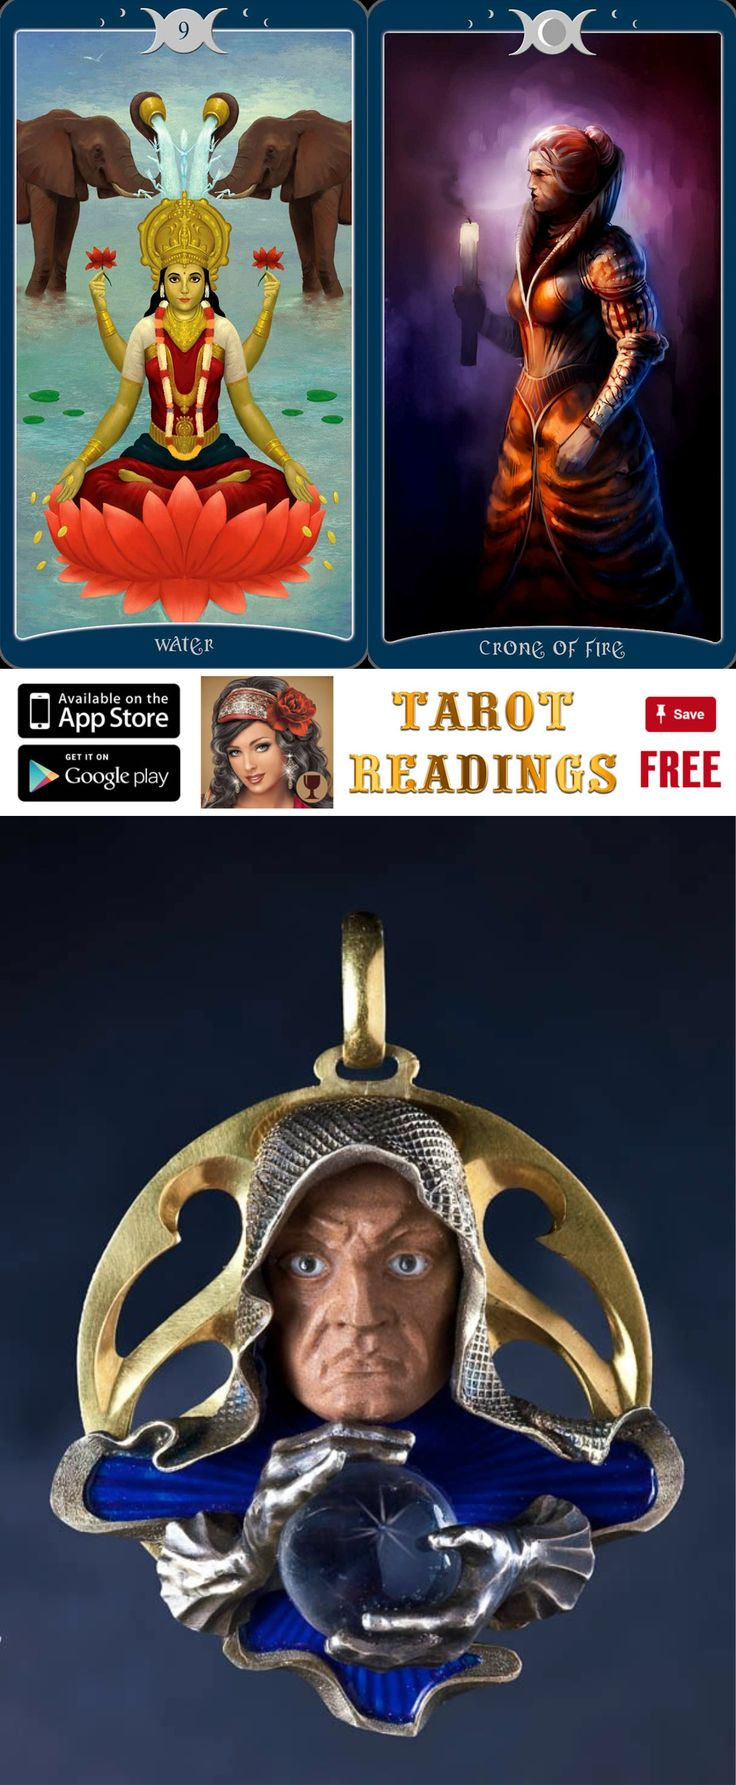 ✯ Install the free app on your iOS and Android device and have fun. free one card tarot reading yes or no, tarottapestry and tarottapestry, tarotwitch and free three card tarot. Best 2018 paganism art and pagani zonda.